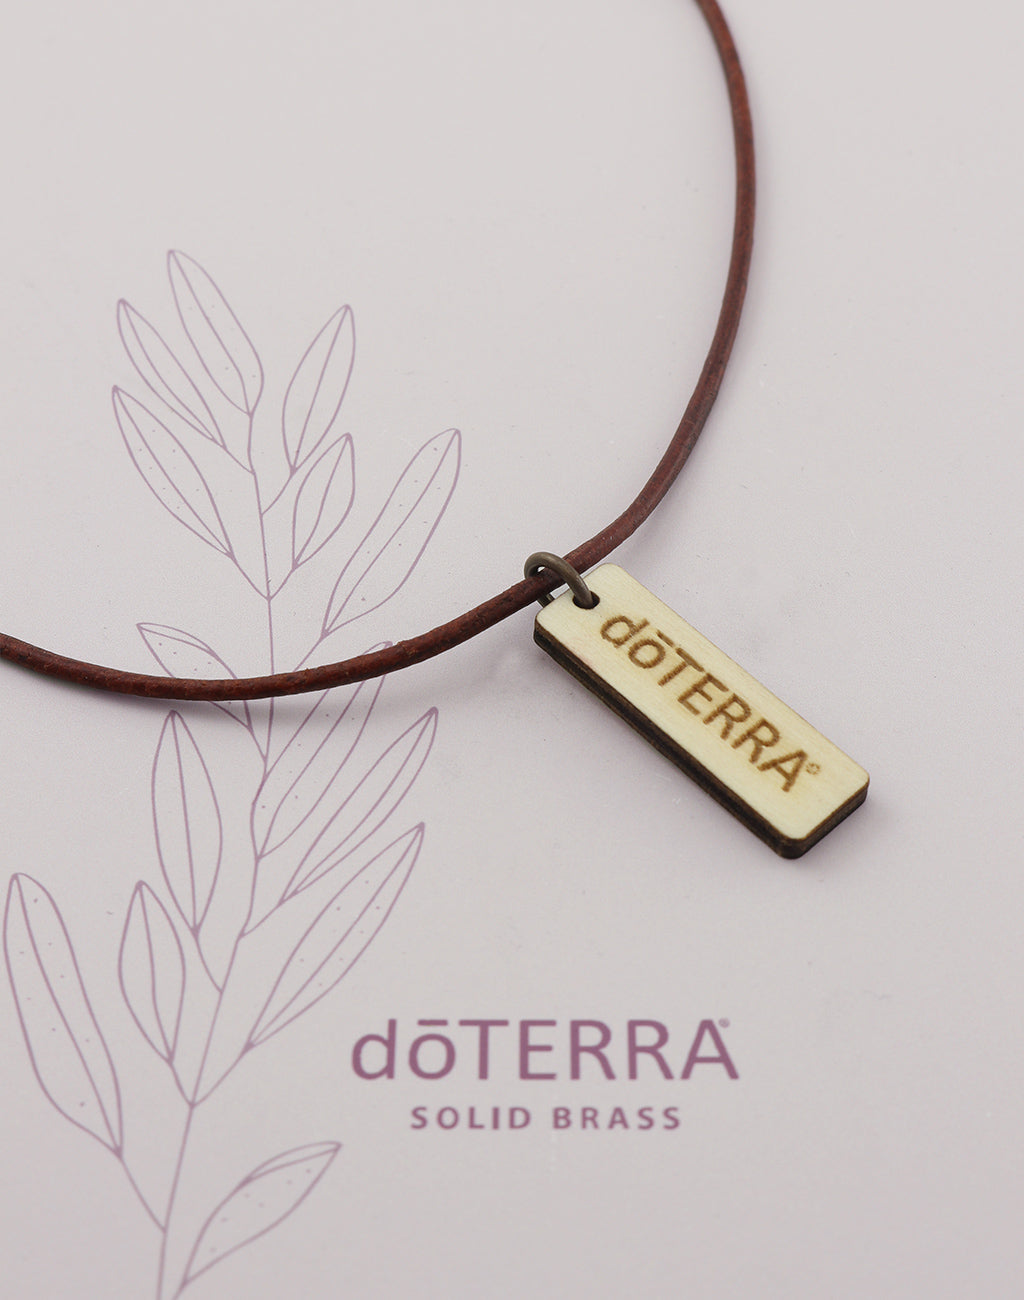 doTERRA EXPEDITION Wood Diffuser Necklace